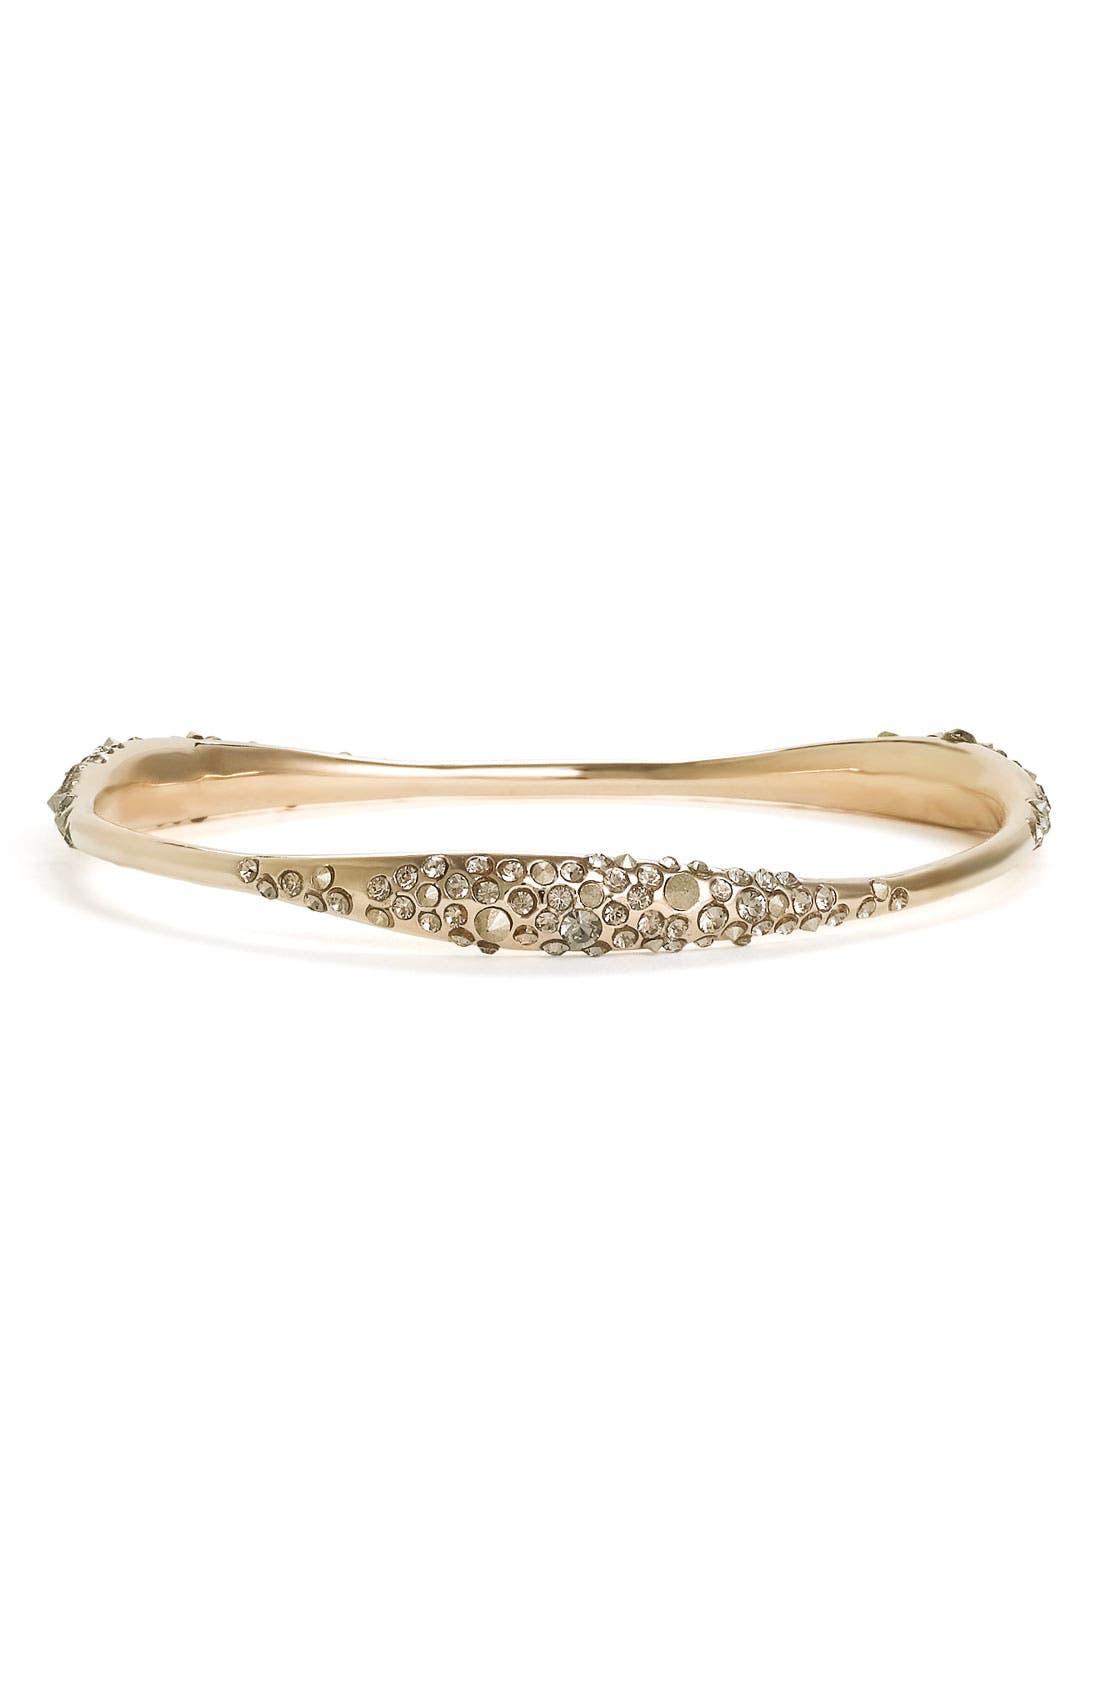 Main Image - Alexis Bittar 'Miss Havisham' Encrusted Skinny Bangle (Nordstrom Exclusive)